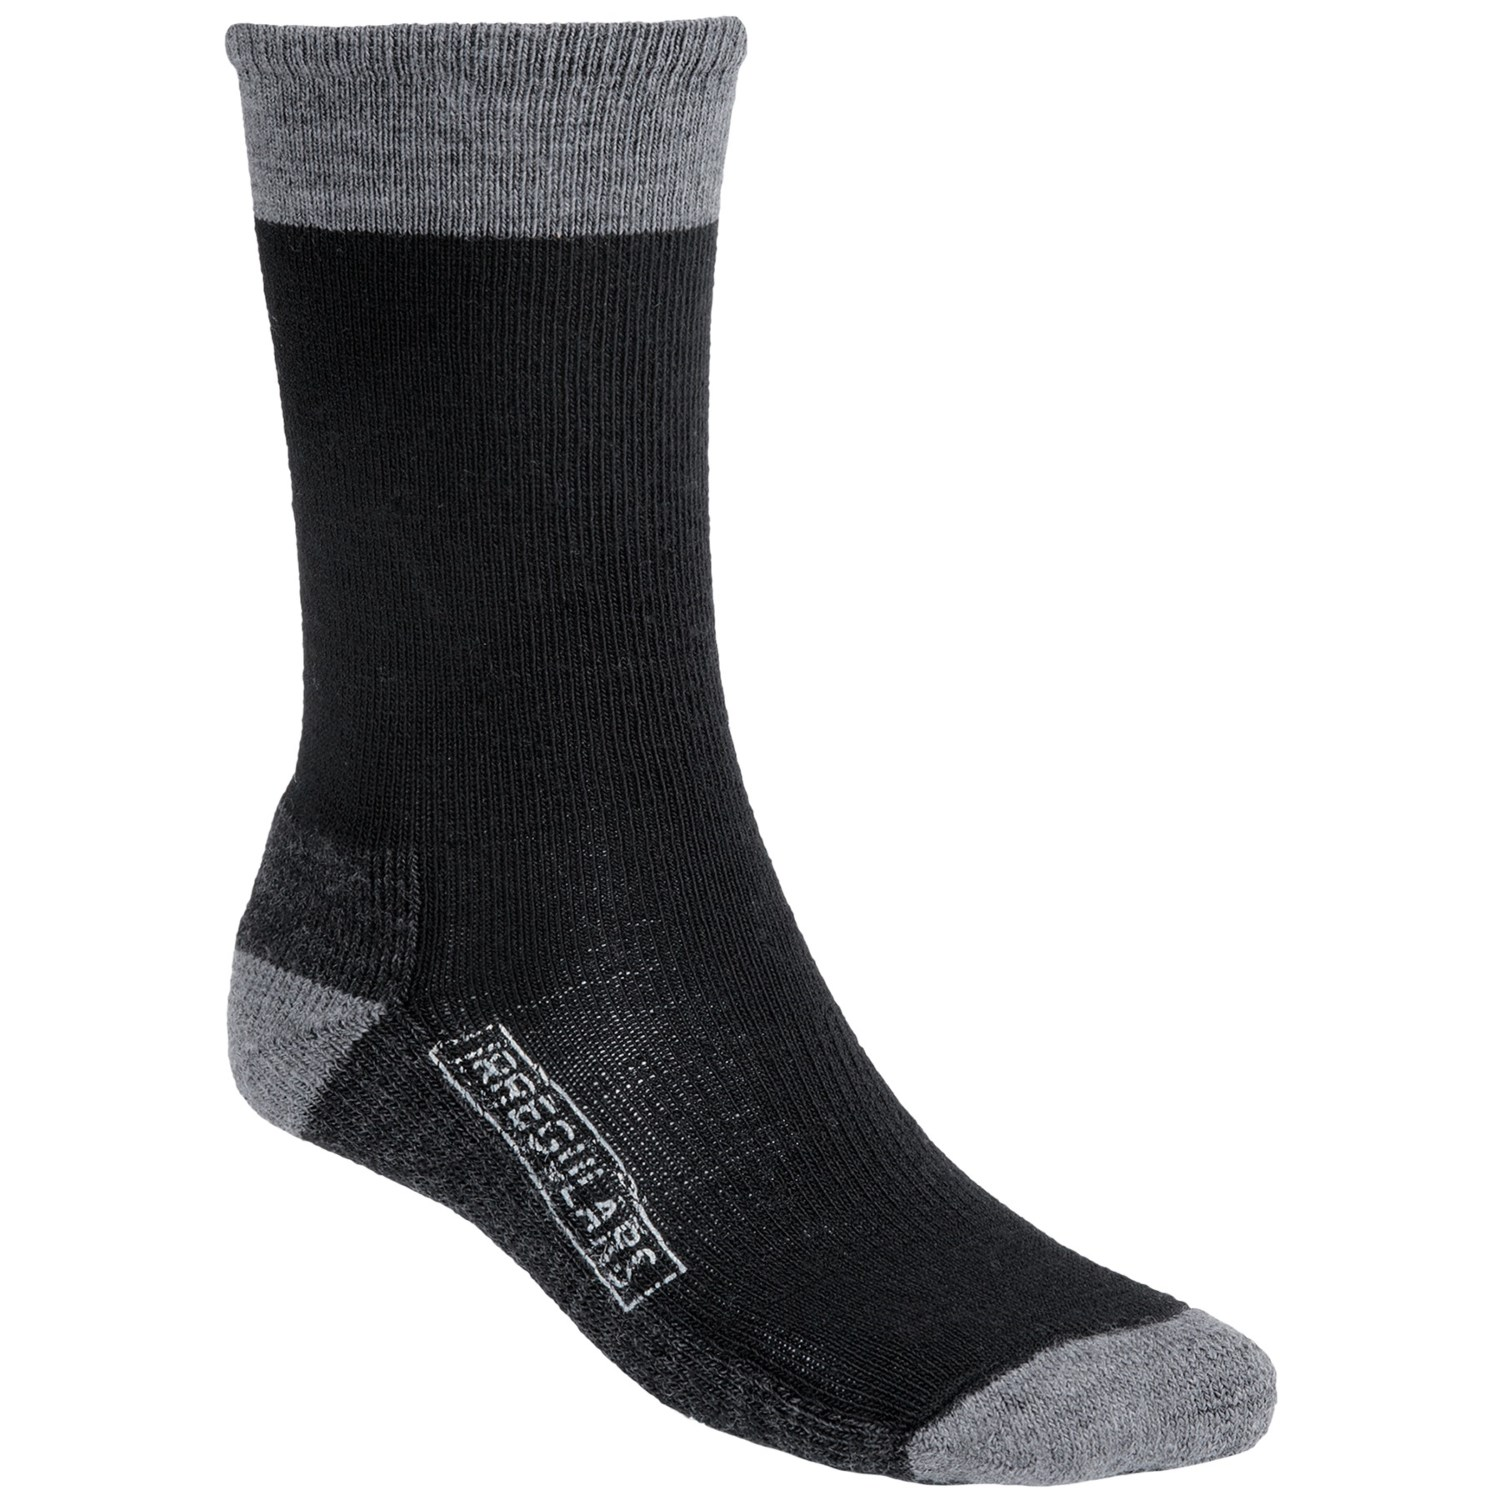 Men's thick socks will have your feet feeling warm in no time. Choose from fun patterns and styles from the top sock brands around the world. Black Gray Men's Wool Hiking Socks. Darn Tough $ Select Size. View Details. New York Knicks Men's Athletic Crew Socks. PKWY $ Add to Cart.